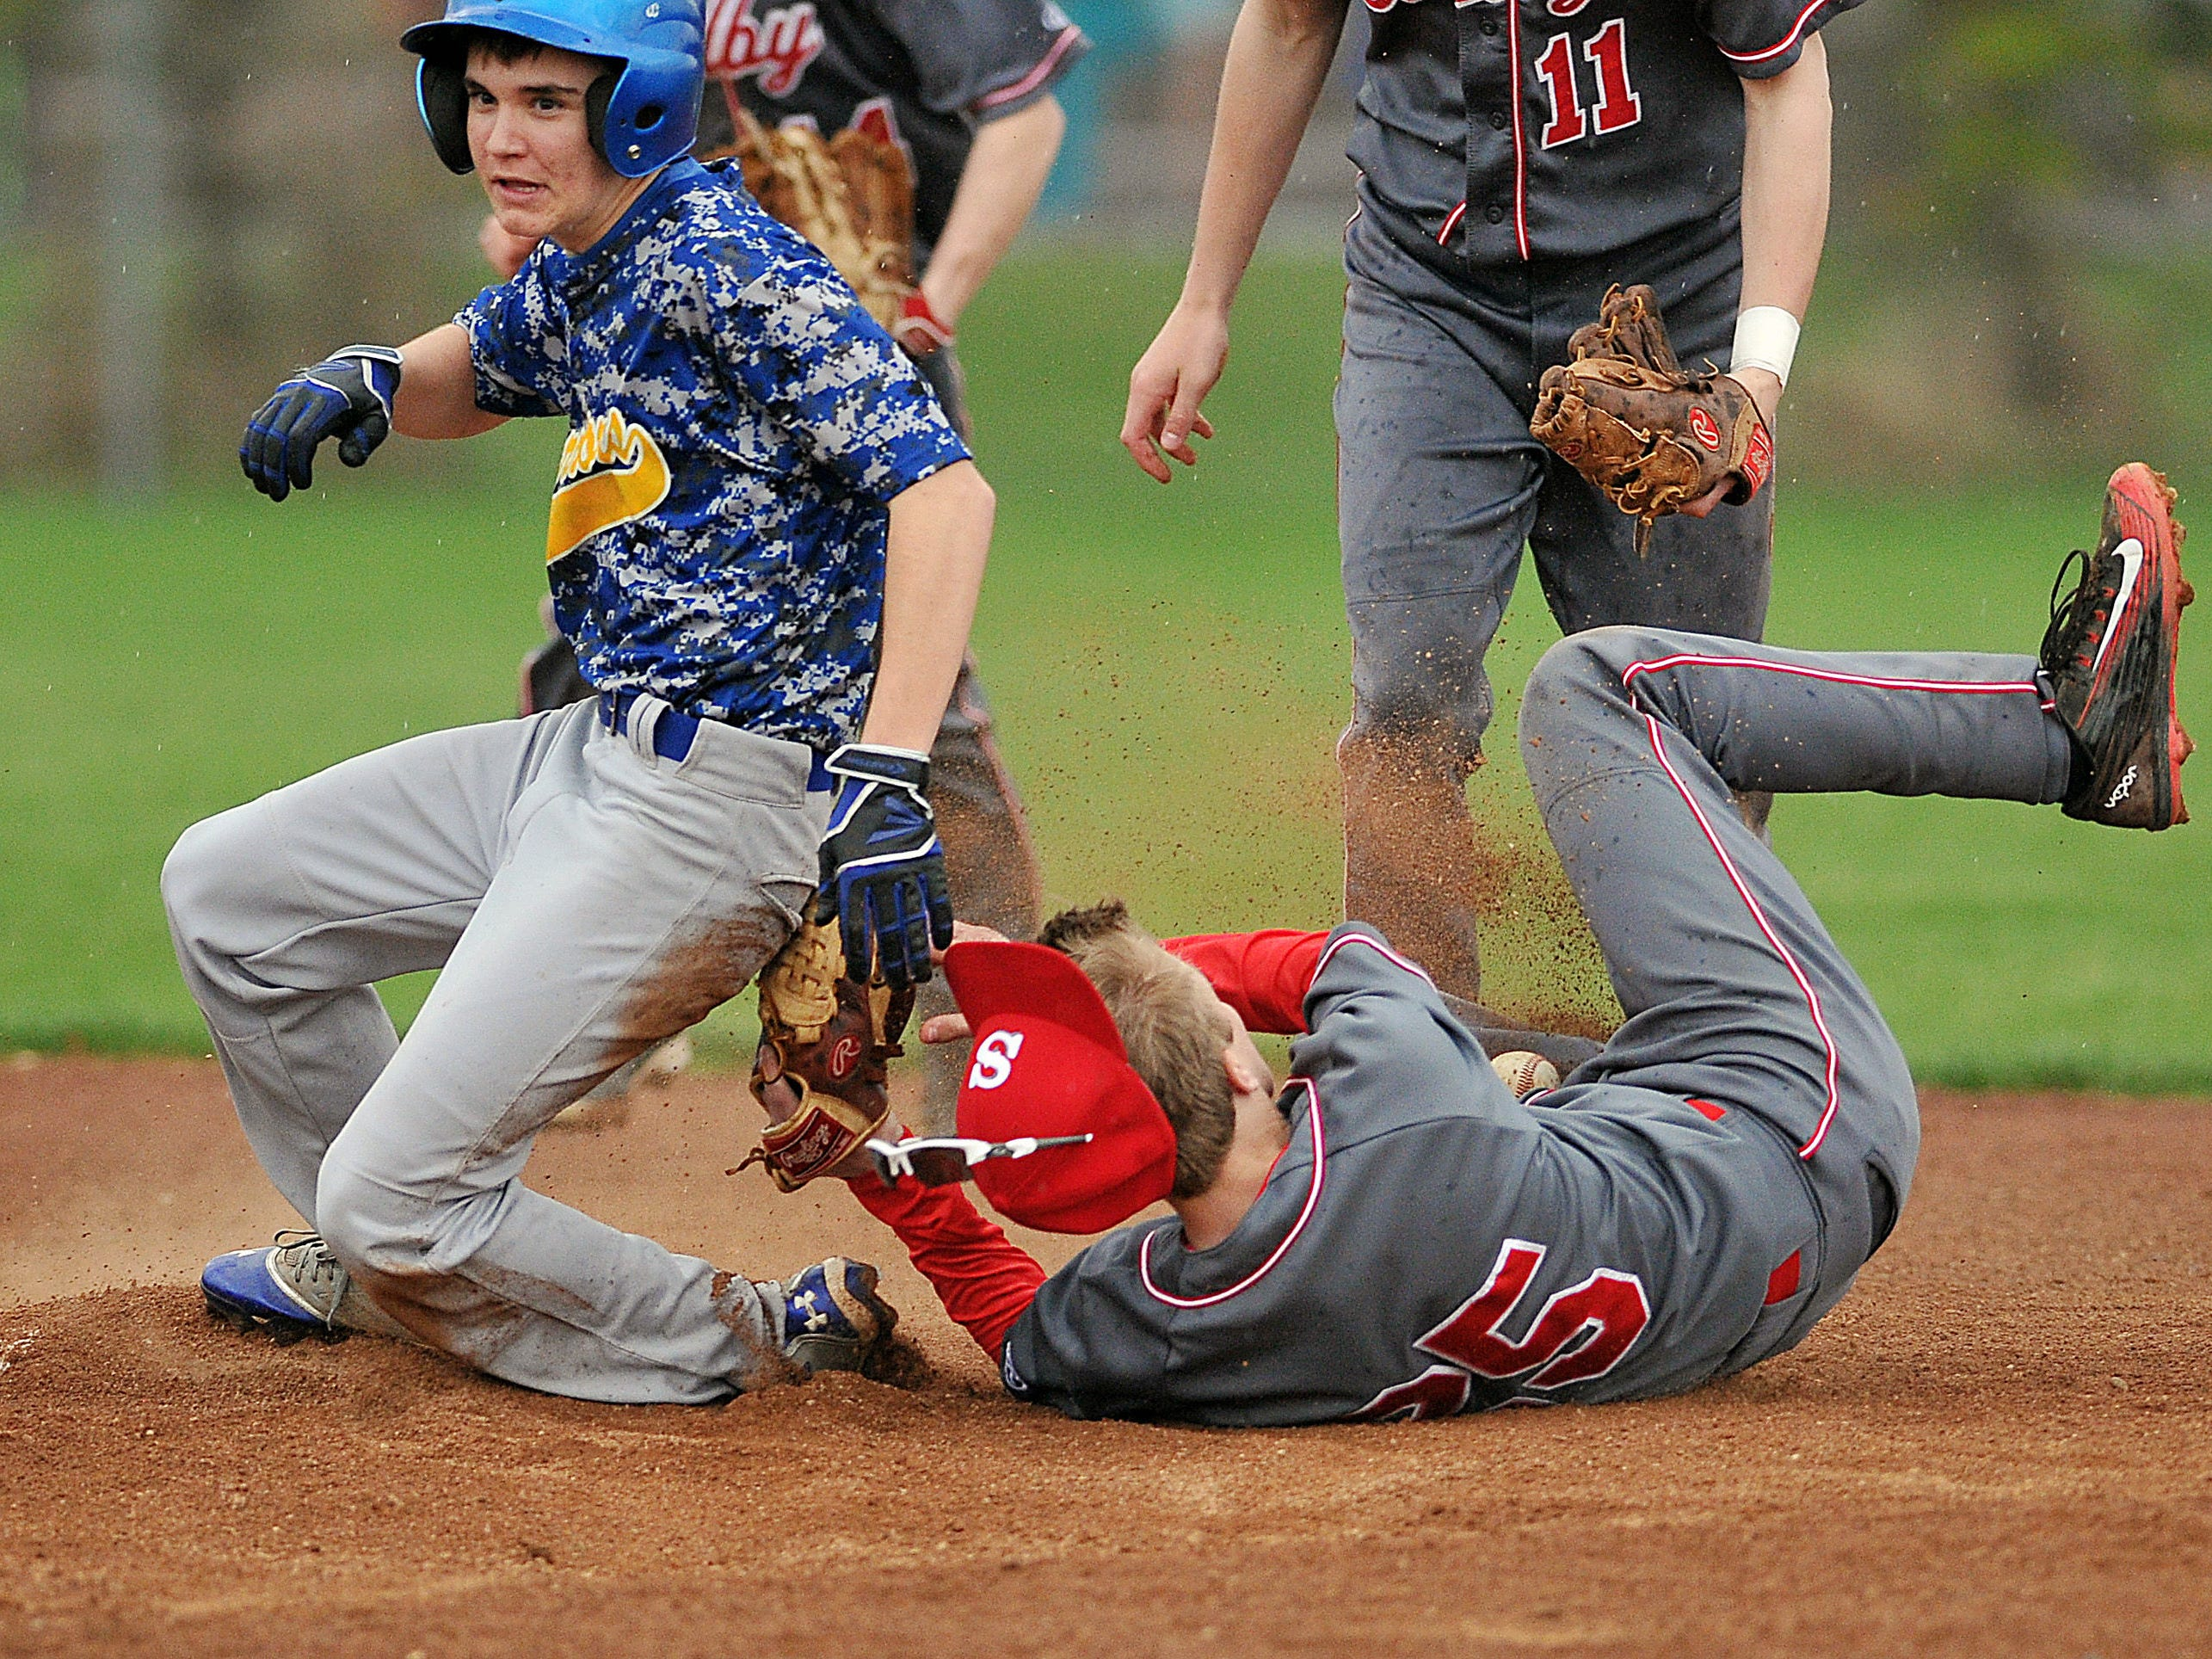 Players get tangled up at second base during a game Monday between Shelby and Ontario.